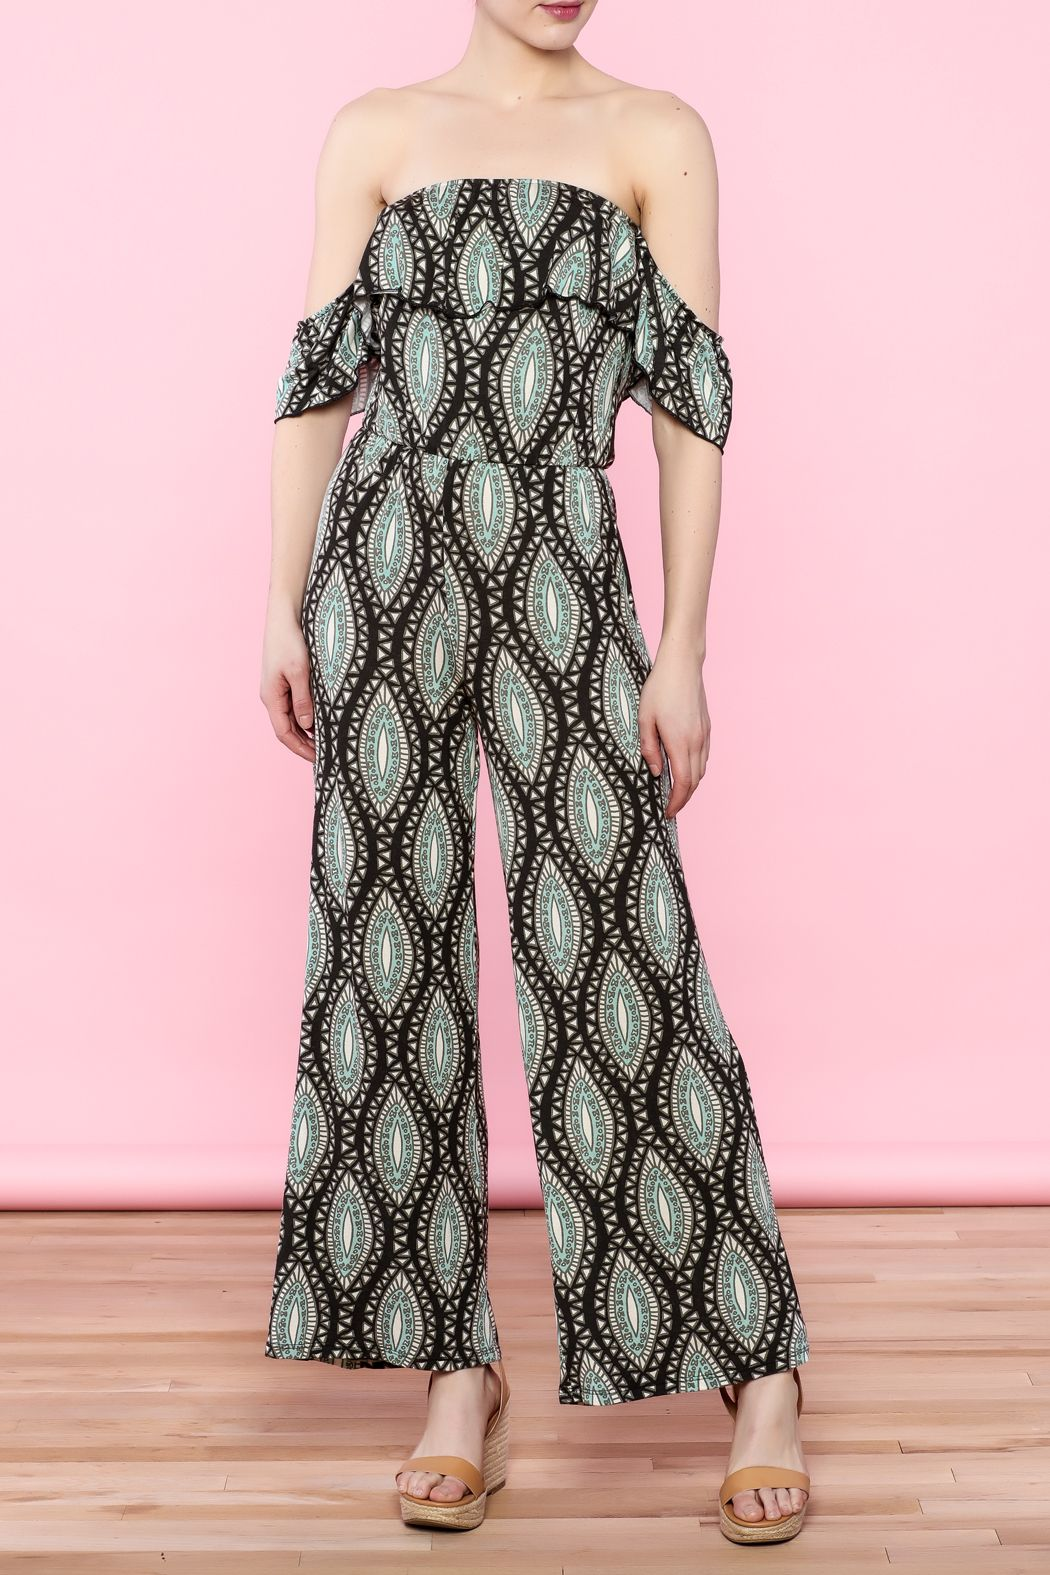 Off-shoulderjumpsuit with black and green pattern print. Elasticized shoulder band and waist.   Off-Shoulder Jumpsuit by Lani Collection. Clothing - Jumpsuits & Rompers - Jumpsuits Palm Beach, Florida